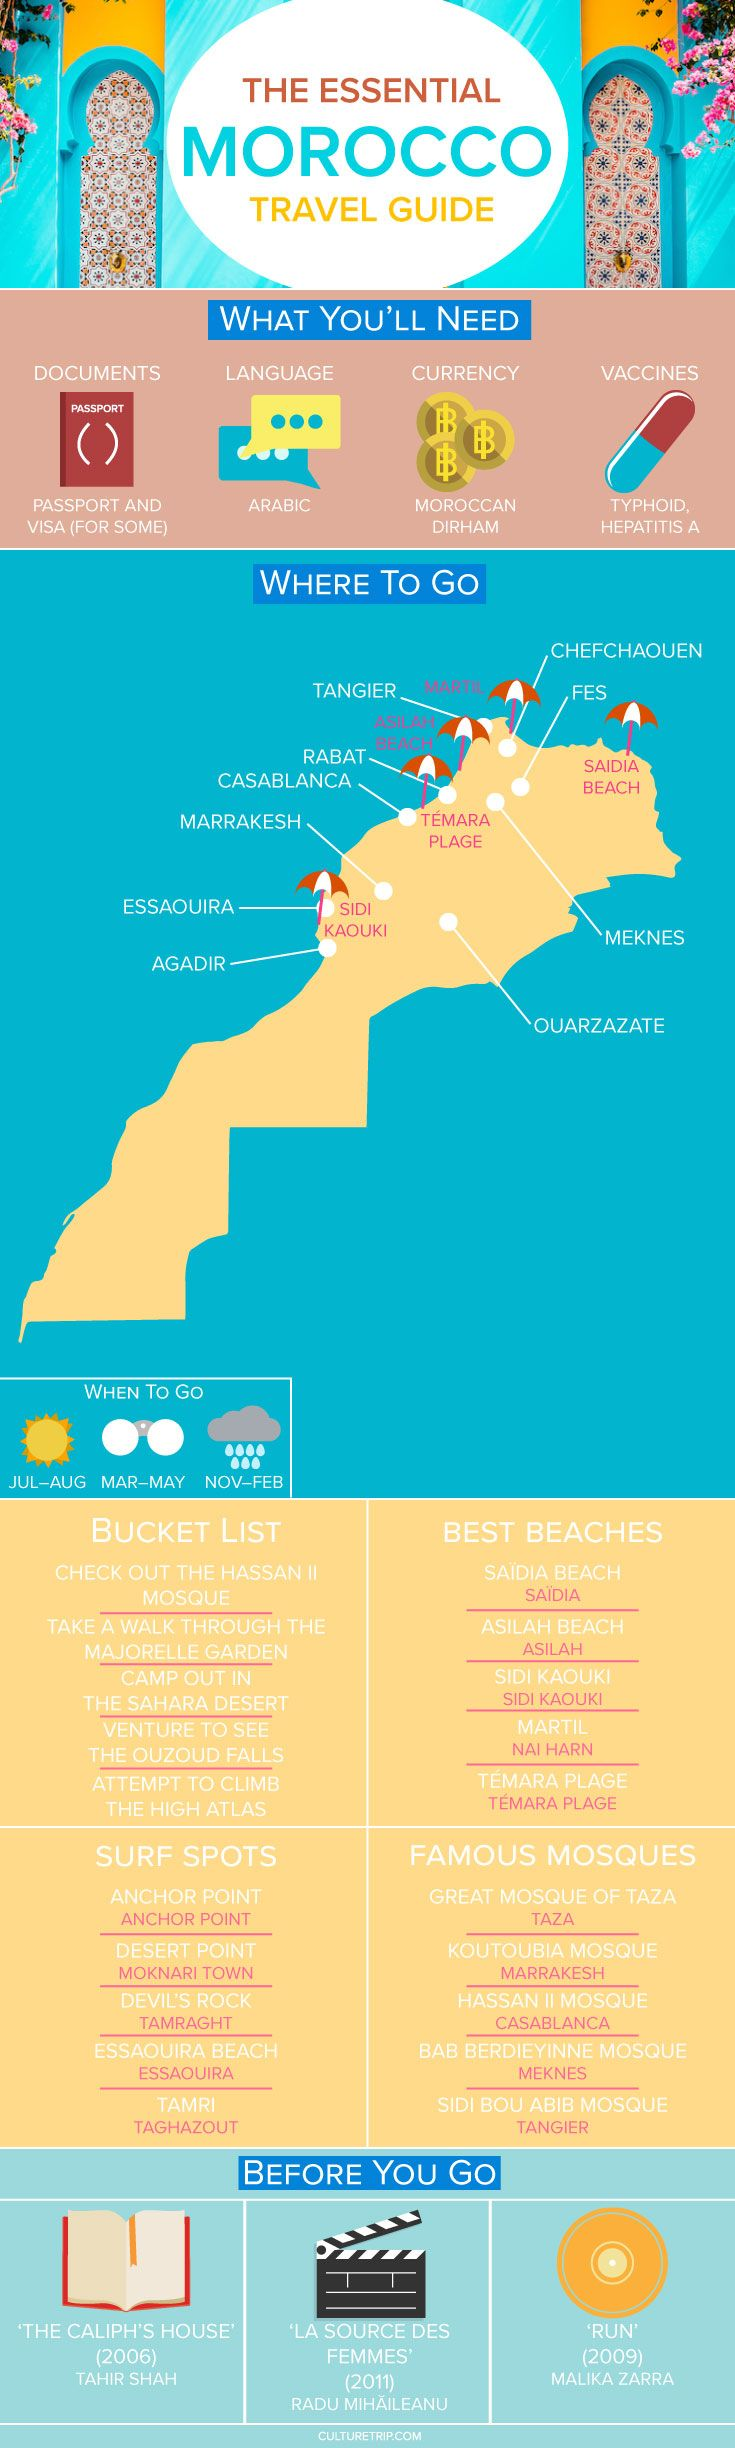 The Essential Travel Guide to Morocco (Infographic) Pinterest: @theculturetrip